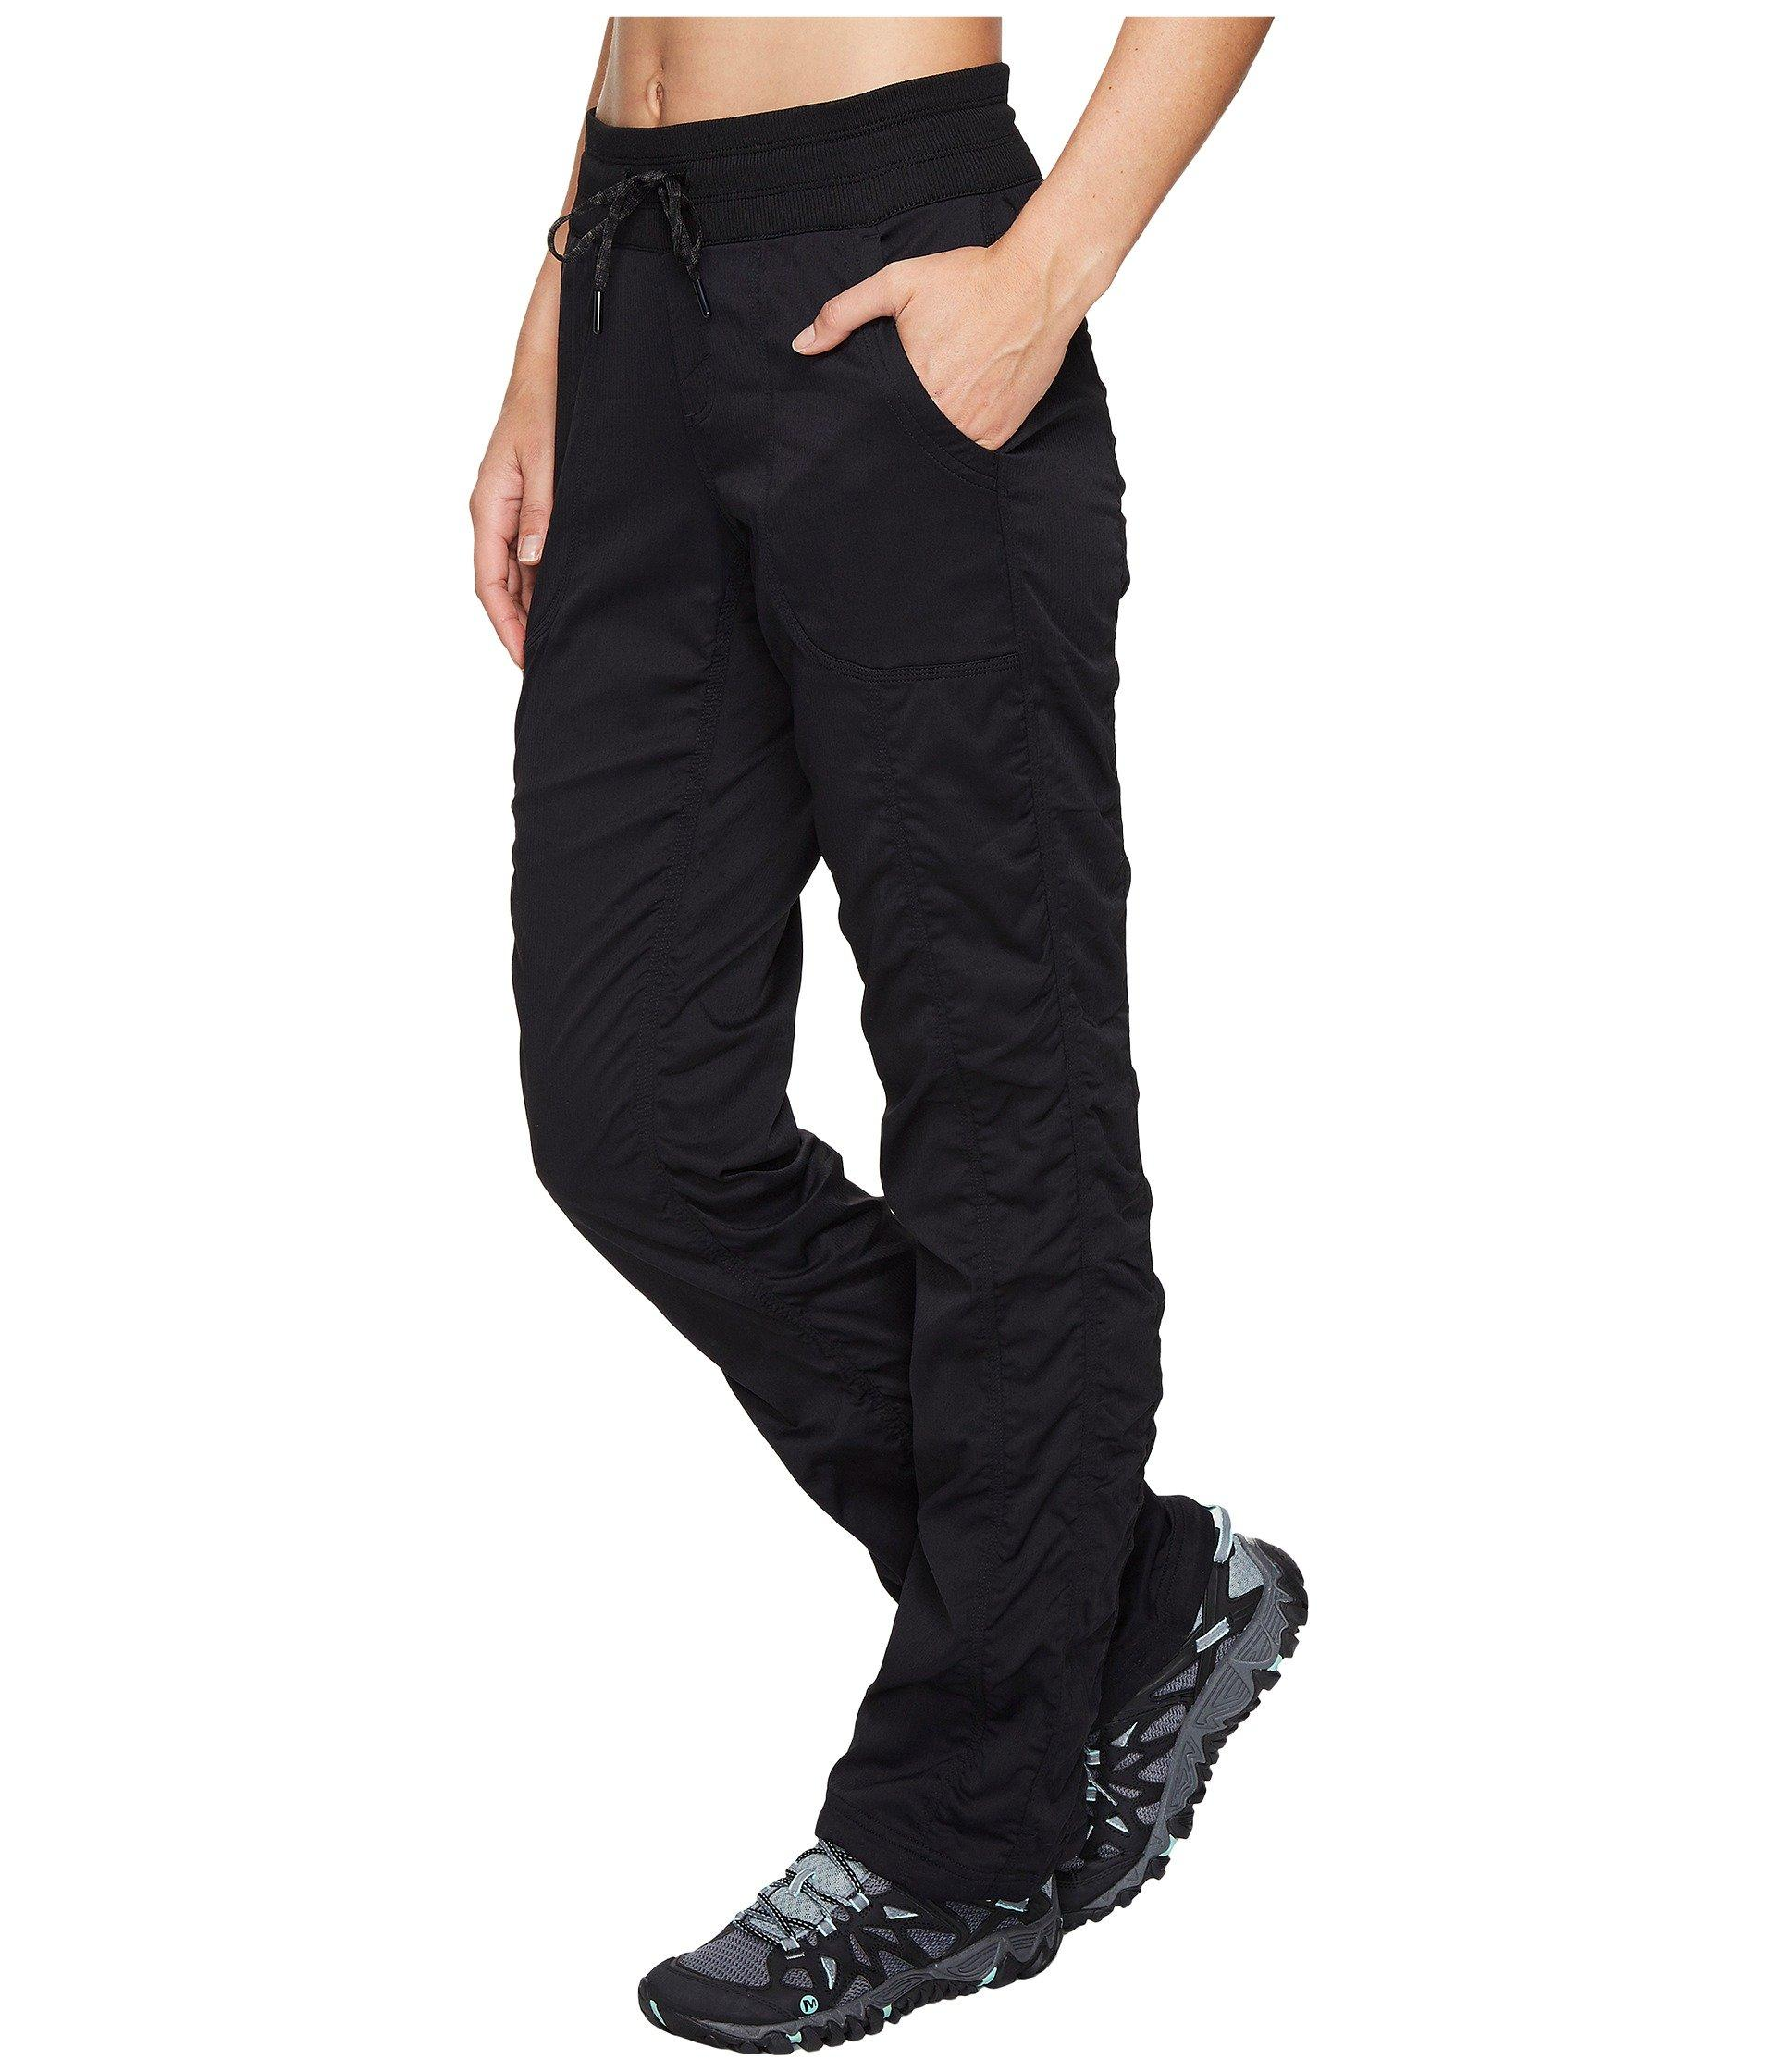 2b359bdafcb Lyst - The North Face Aphrodite 2.0 Pants (urban Navy Heather) Women s  Casual Pants in Black